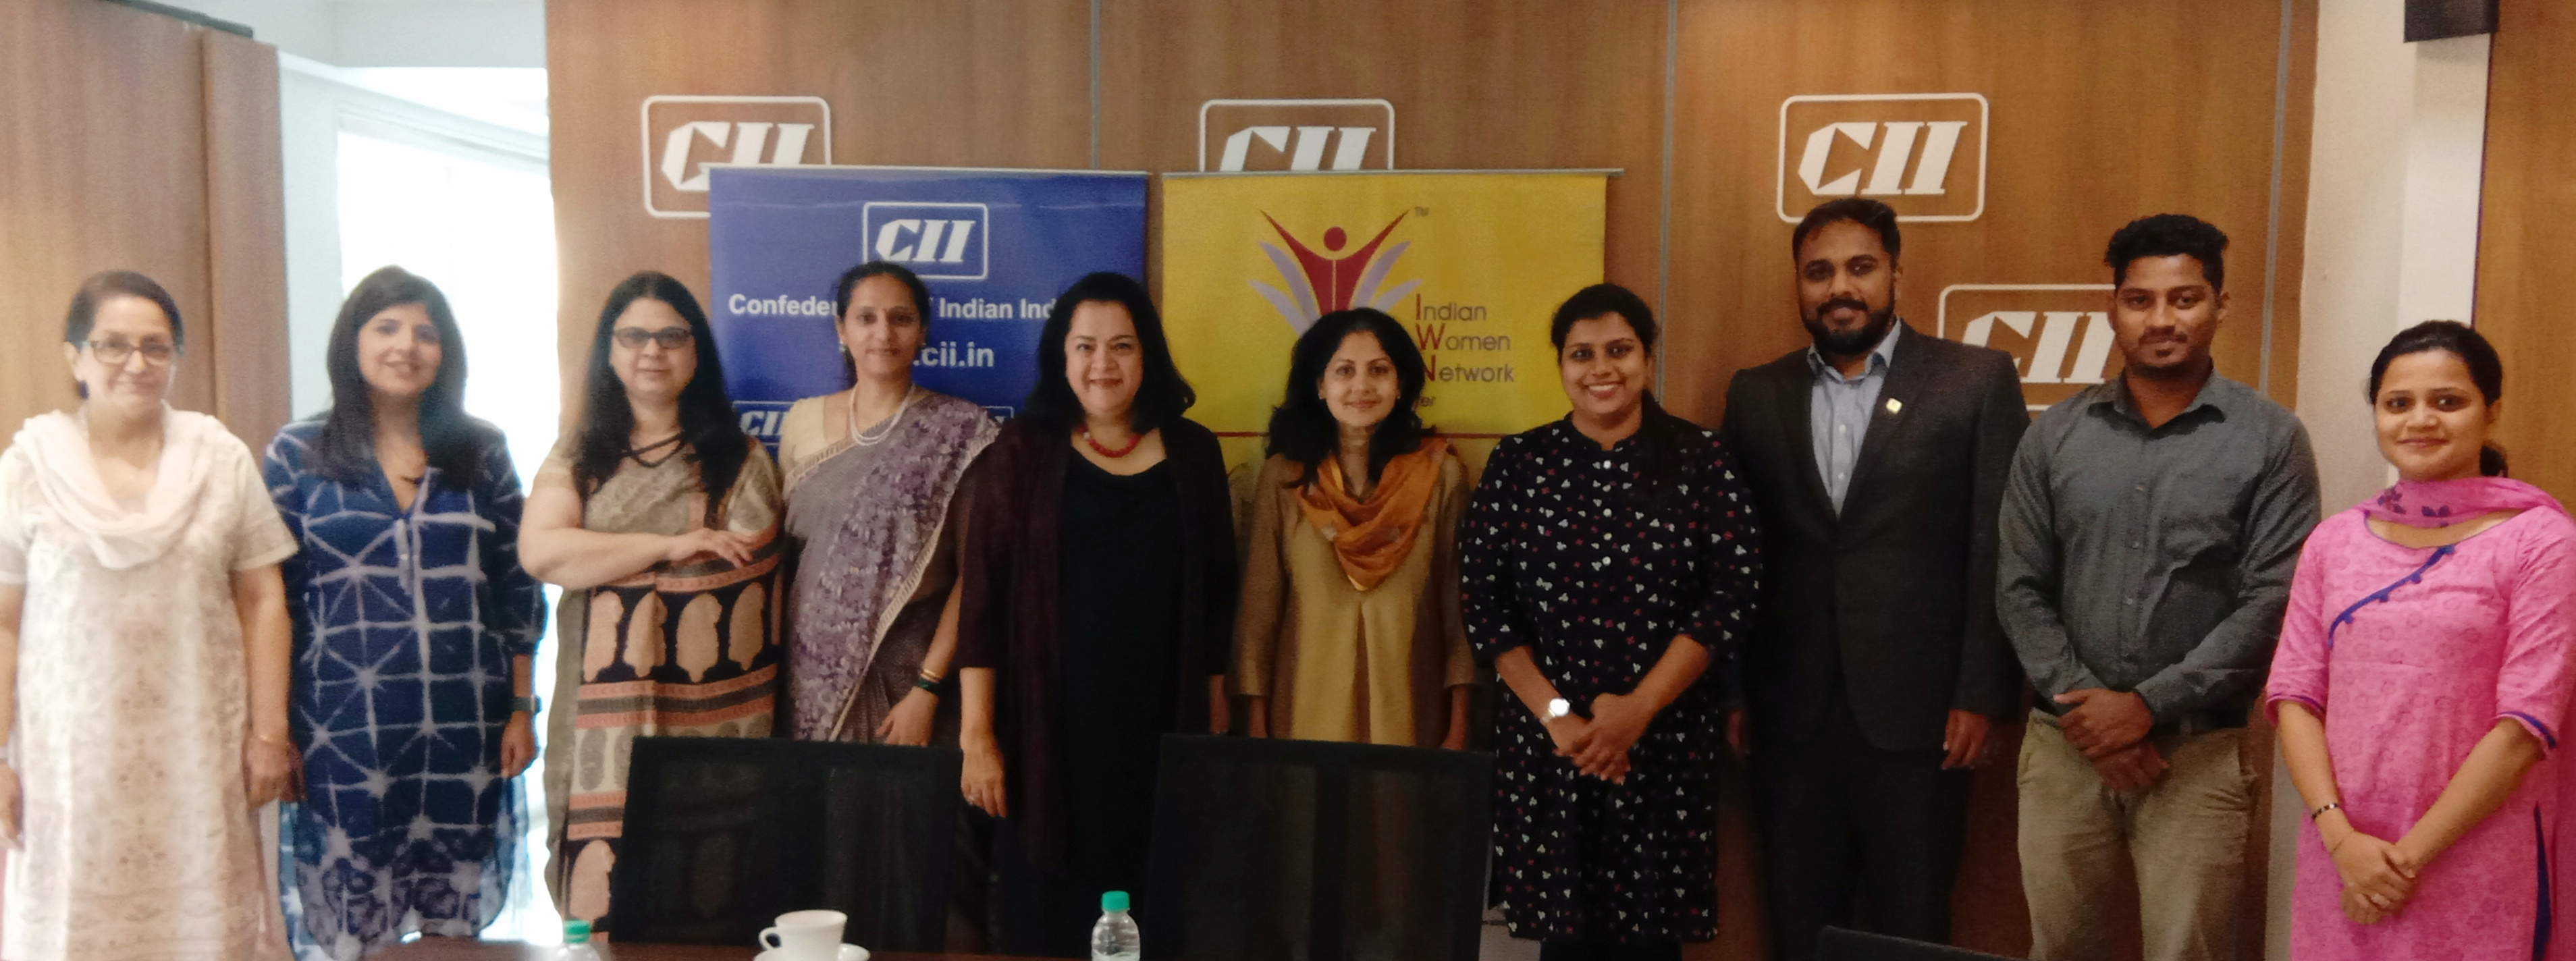 Second Meeting of CII IWN Maharashtra Chapter Steering Committee 2019- 2020